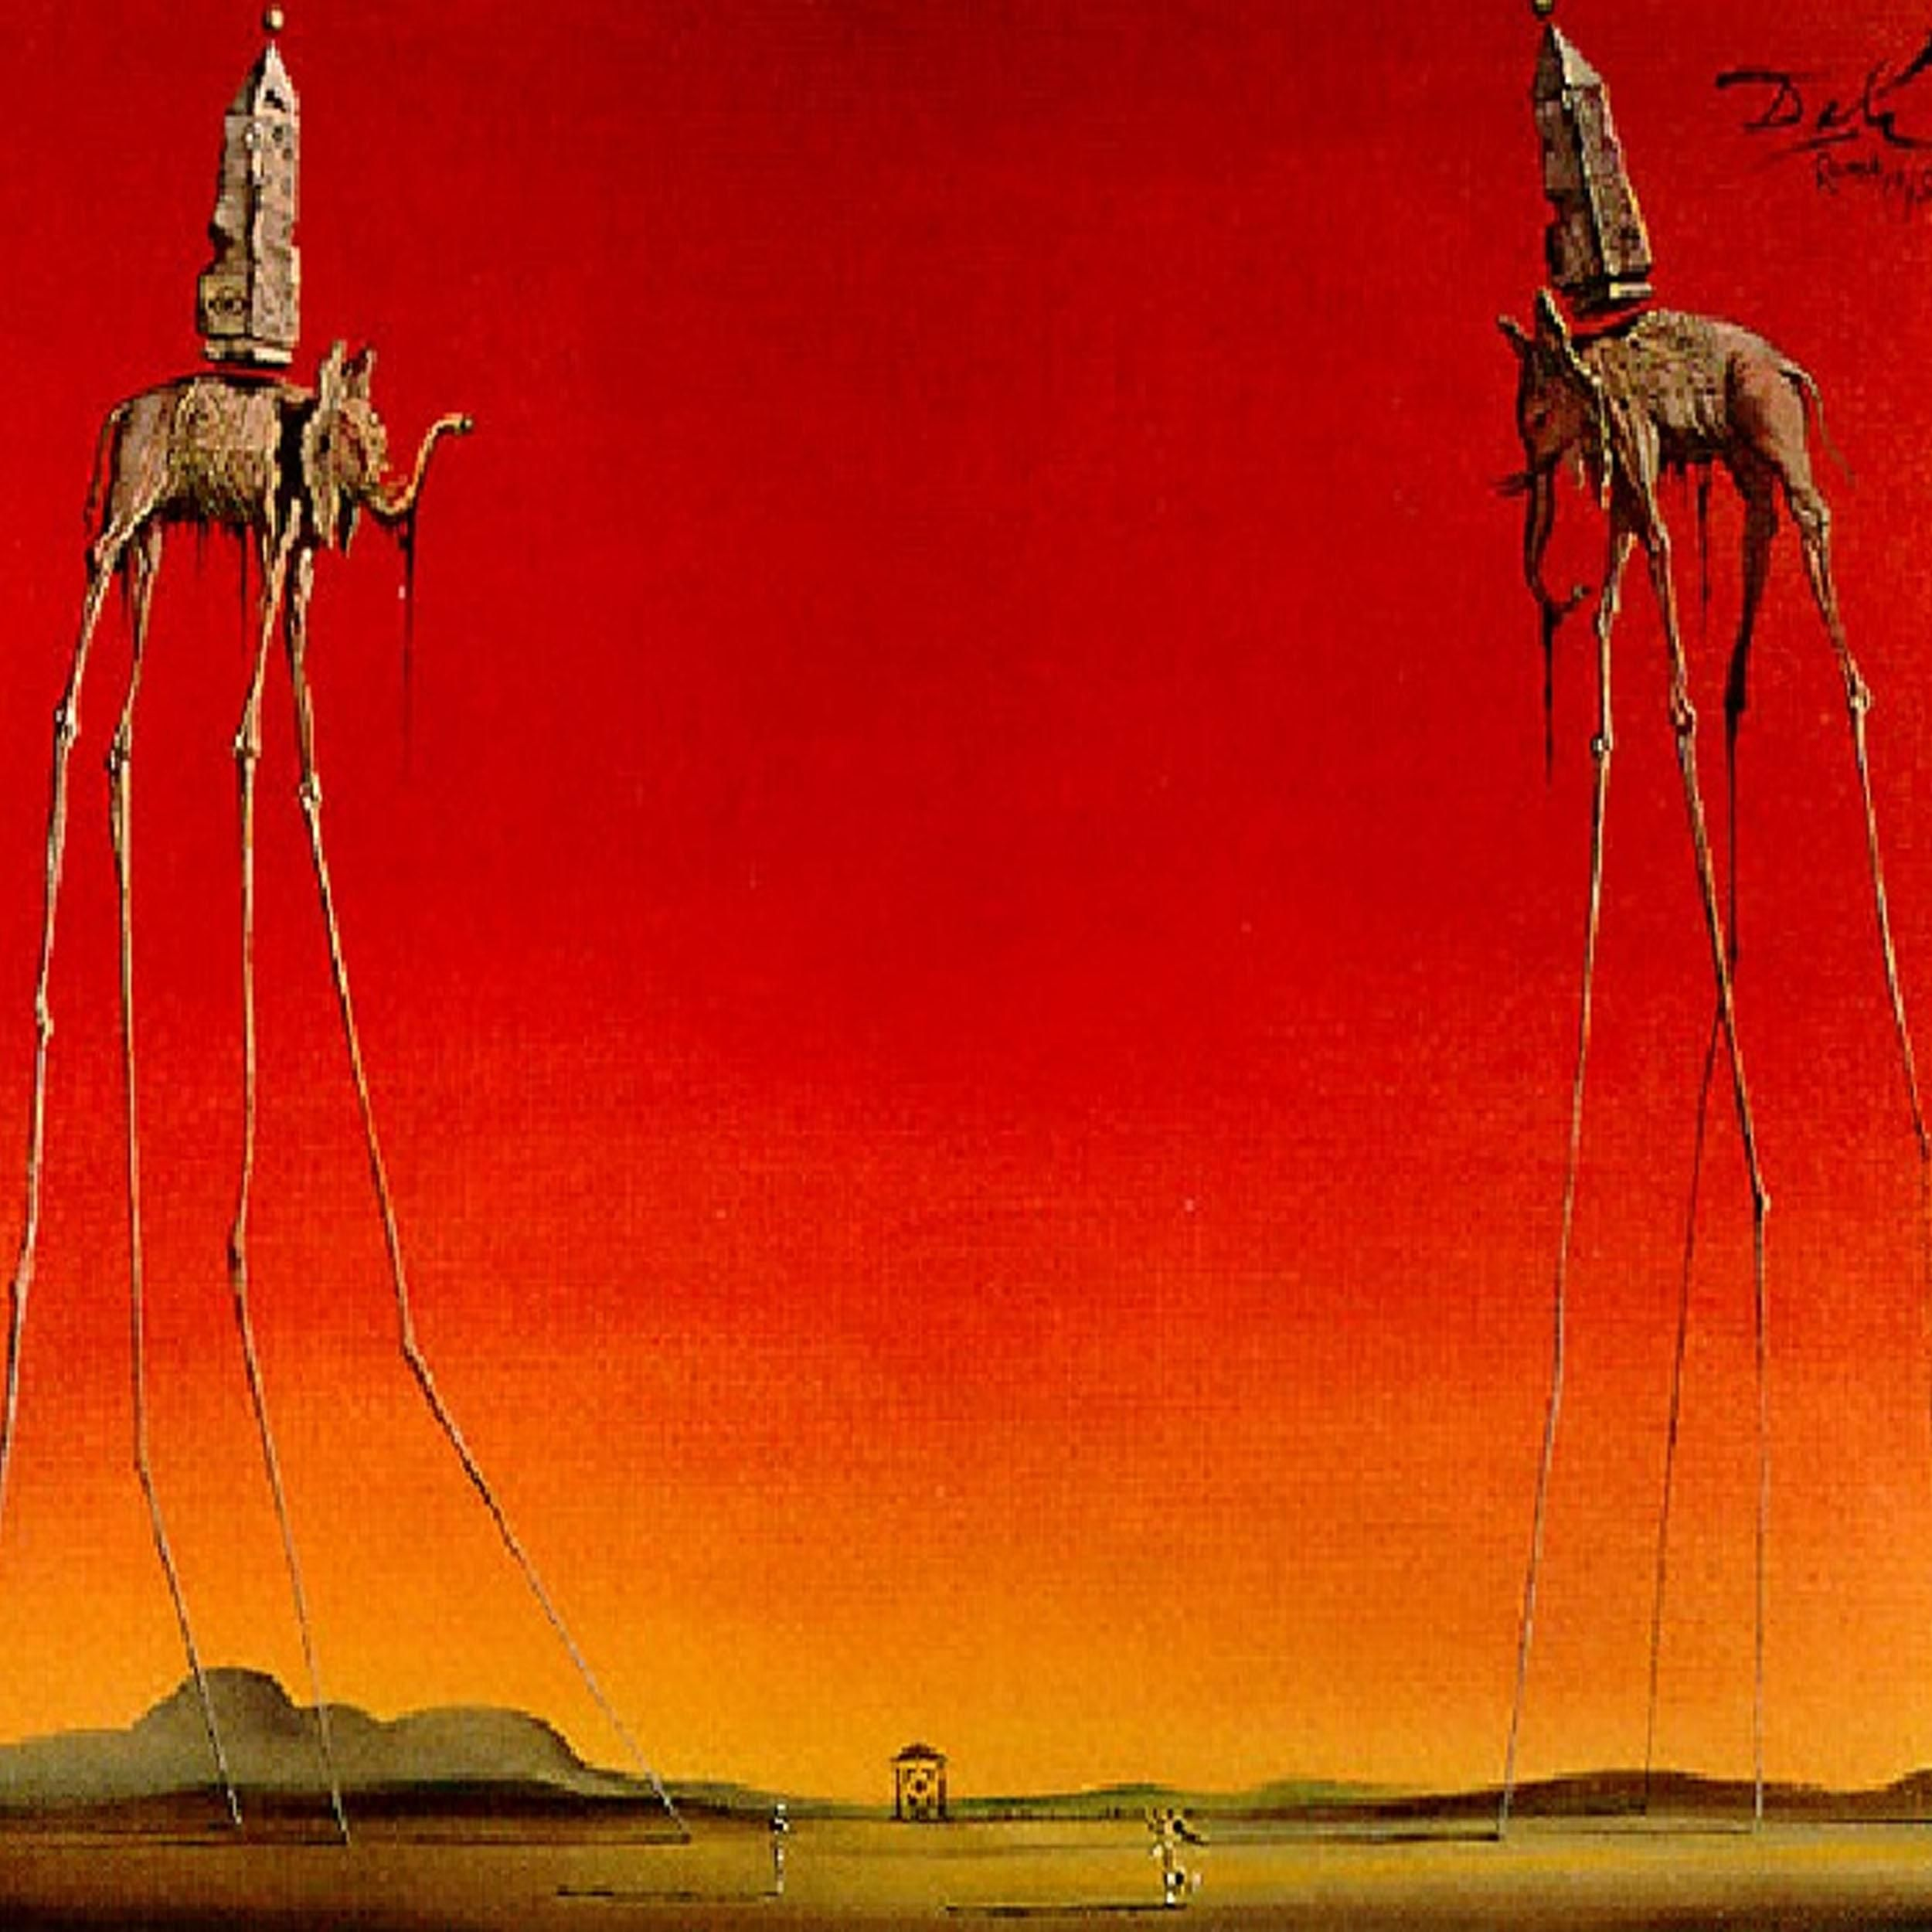 The Elephants is a 1948 painting by the Spanish surrealist artist ...